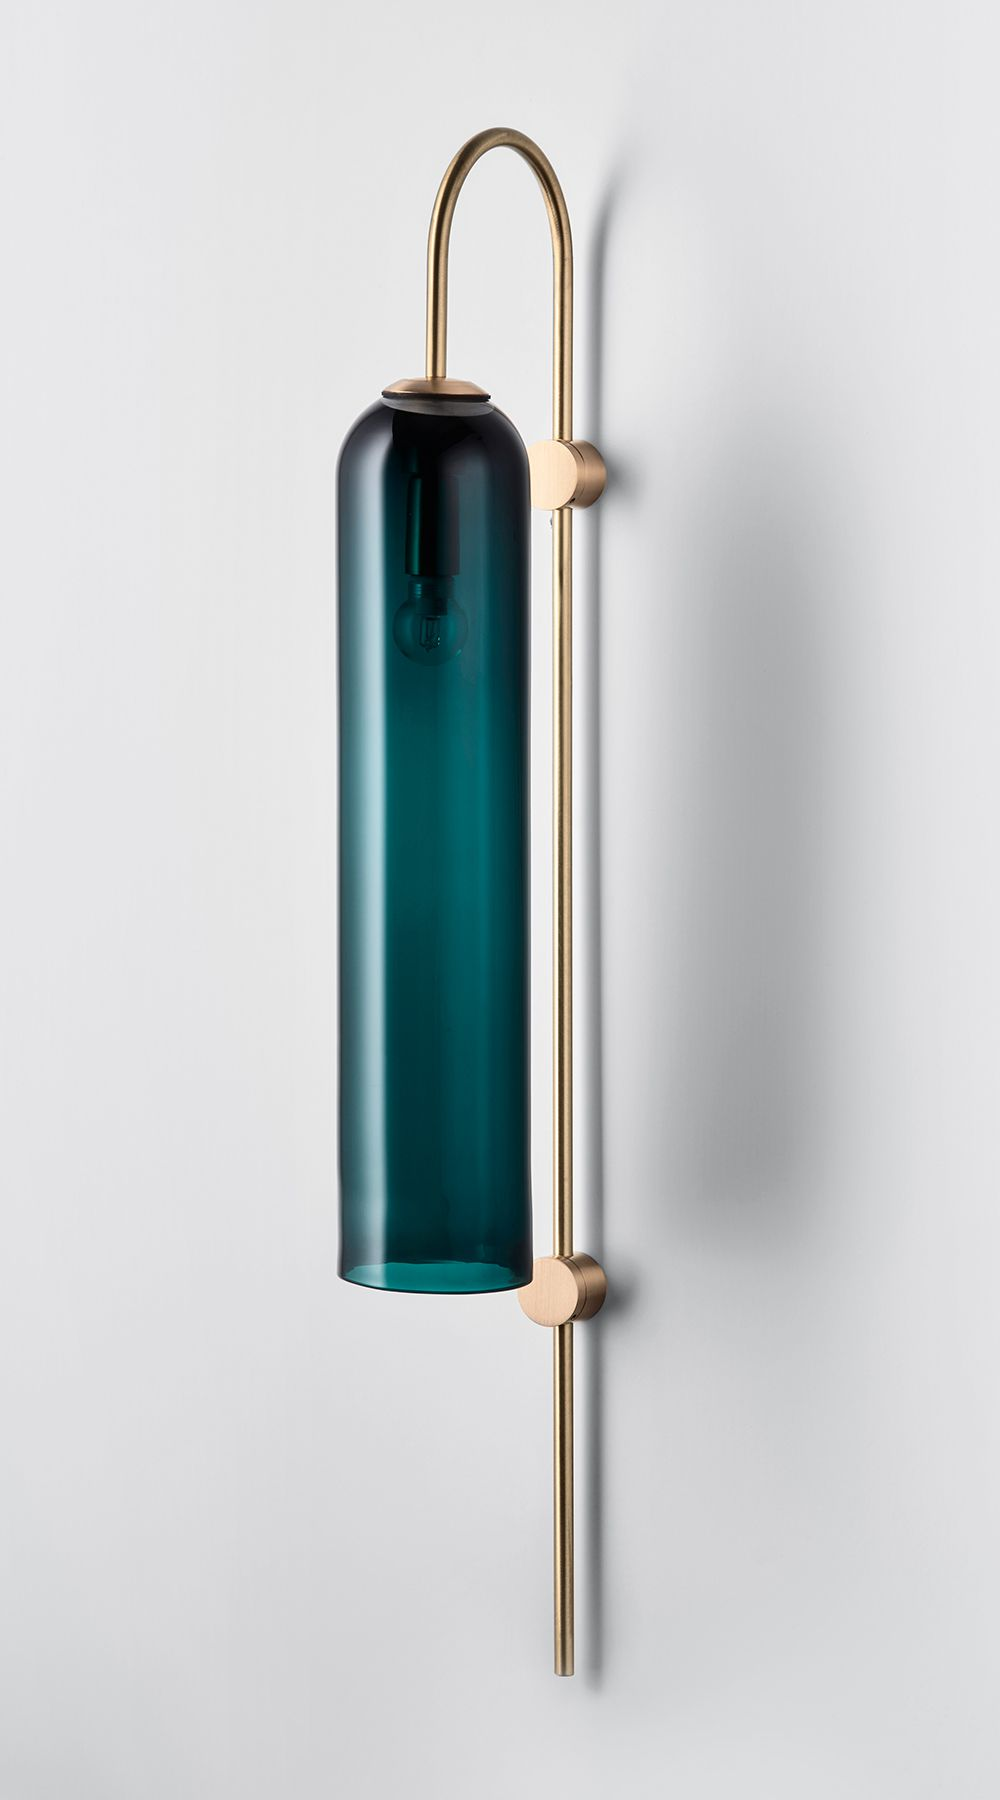 Collection articolo lighting pinterest coloured glass this years icff showcased exceptional design from around the worldand these eleven lighting products truly shined aloadofball Gallery